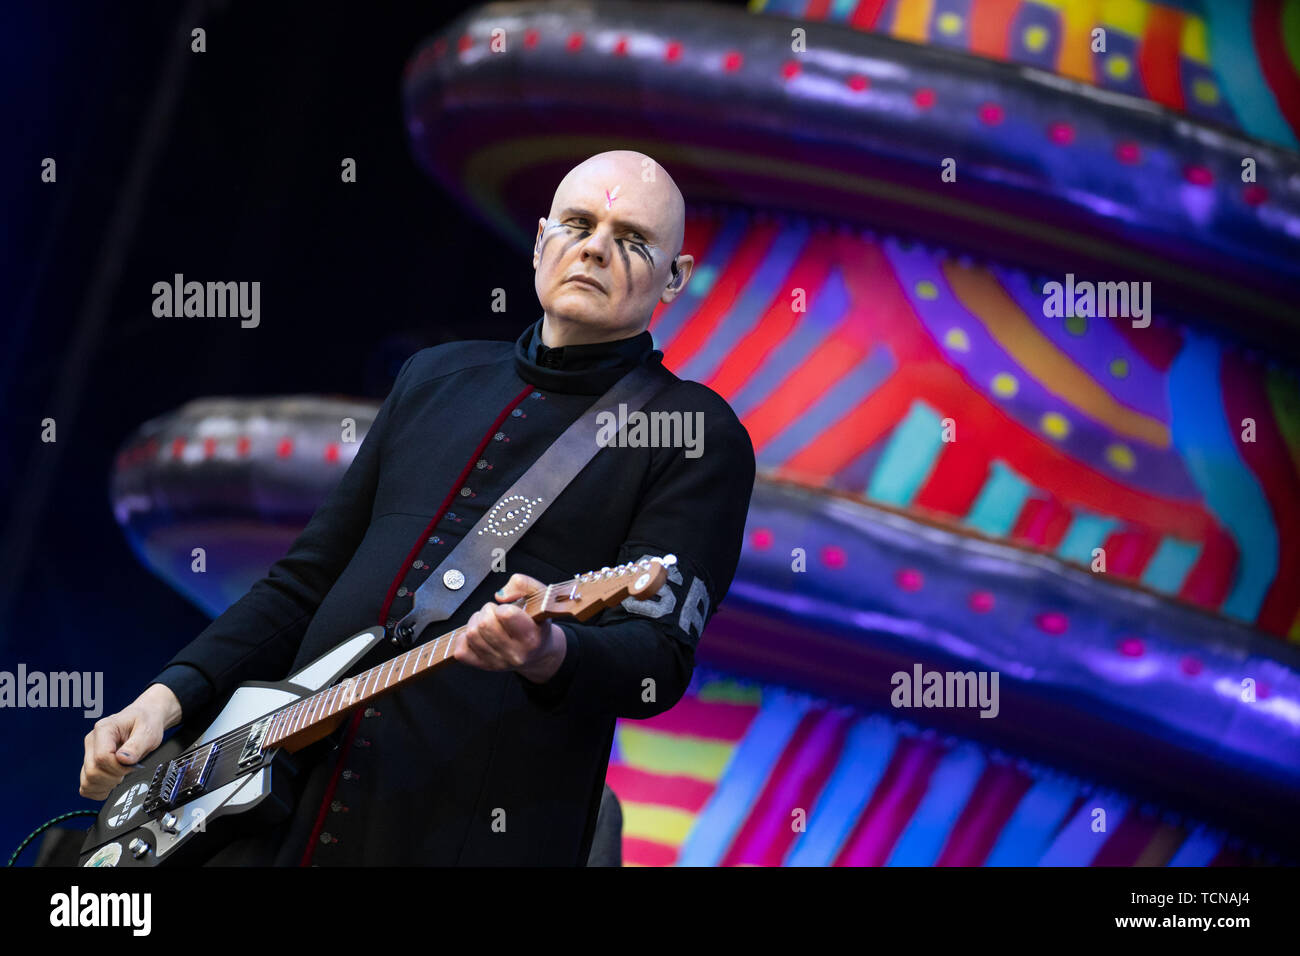 Nuremberg, Germany. 09th June, 2019. Billy Corgan, frontman of the US-American alternative rock band The Smashing Pumpkins, is on stage at the open-air festival 'Rock im Park'. From 7 to 9 June, the festival had a total of around 75 music acts on its programme and around 70,000 guests were expected. Credit: Daniel Karmann/dpa/Alamy Live News - Stock Image